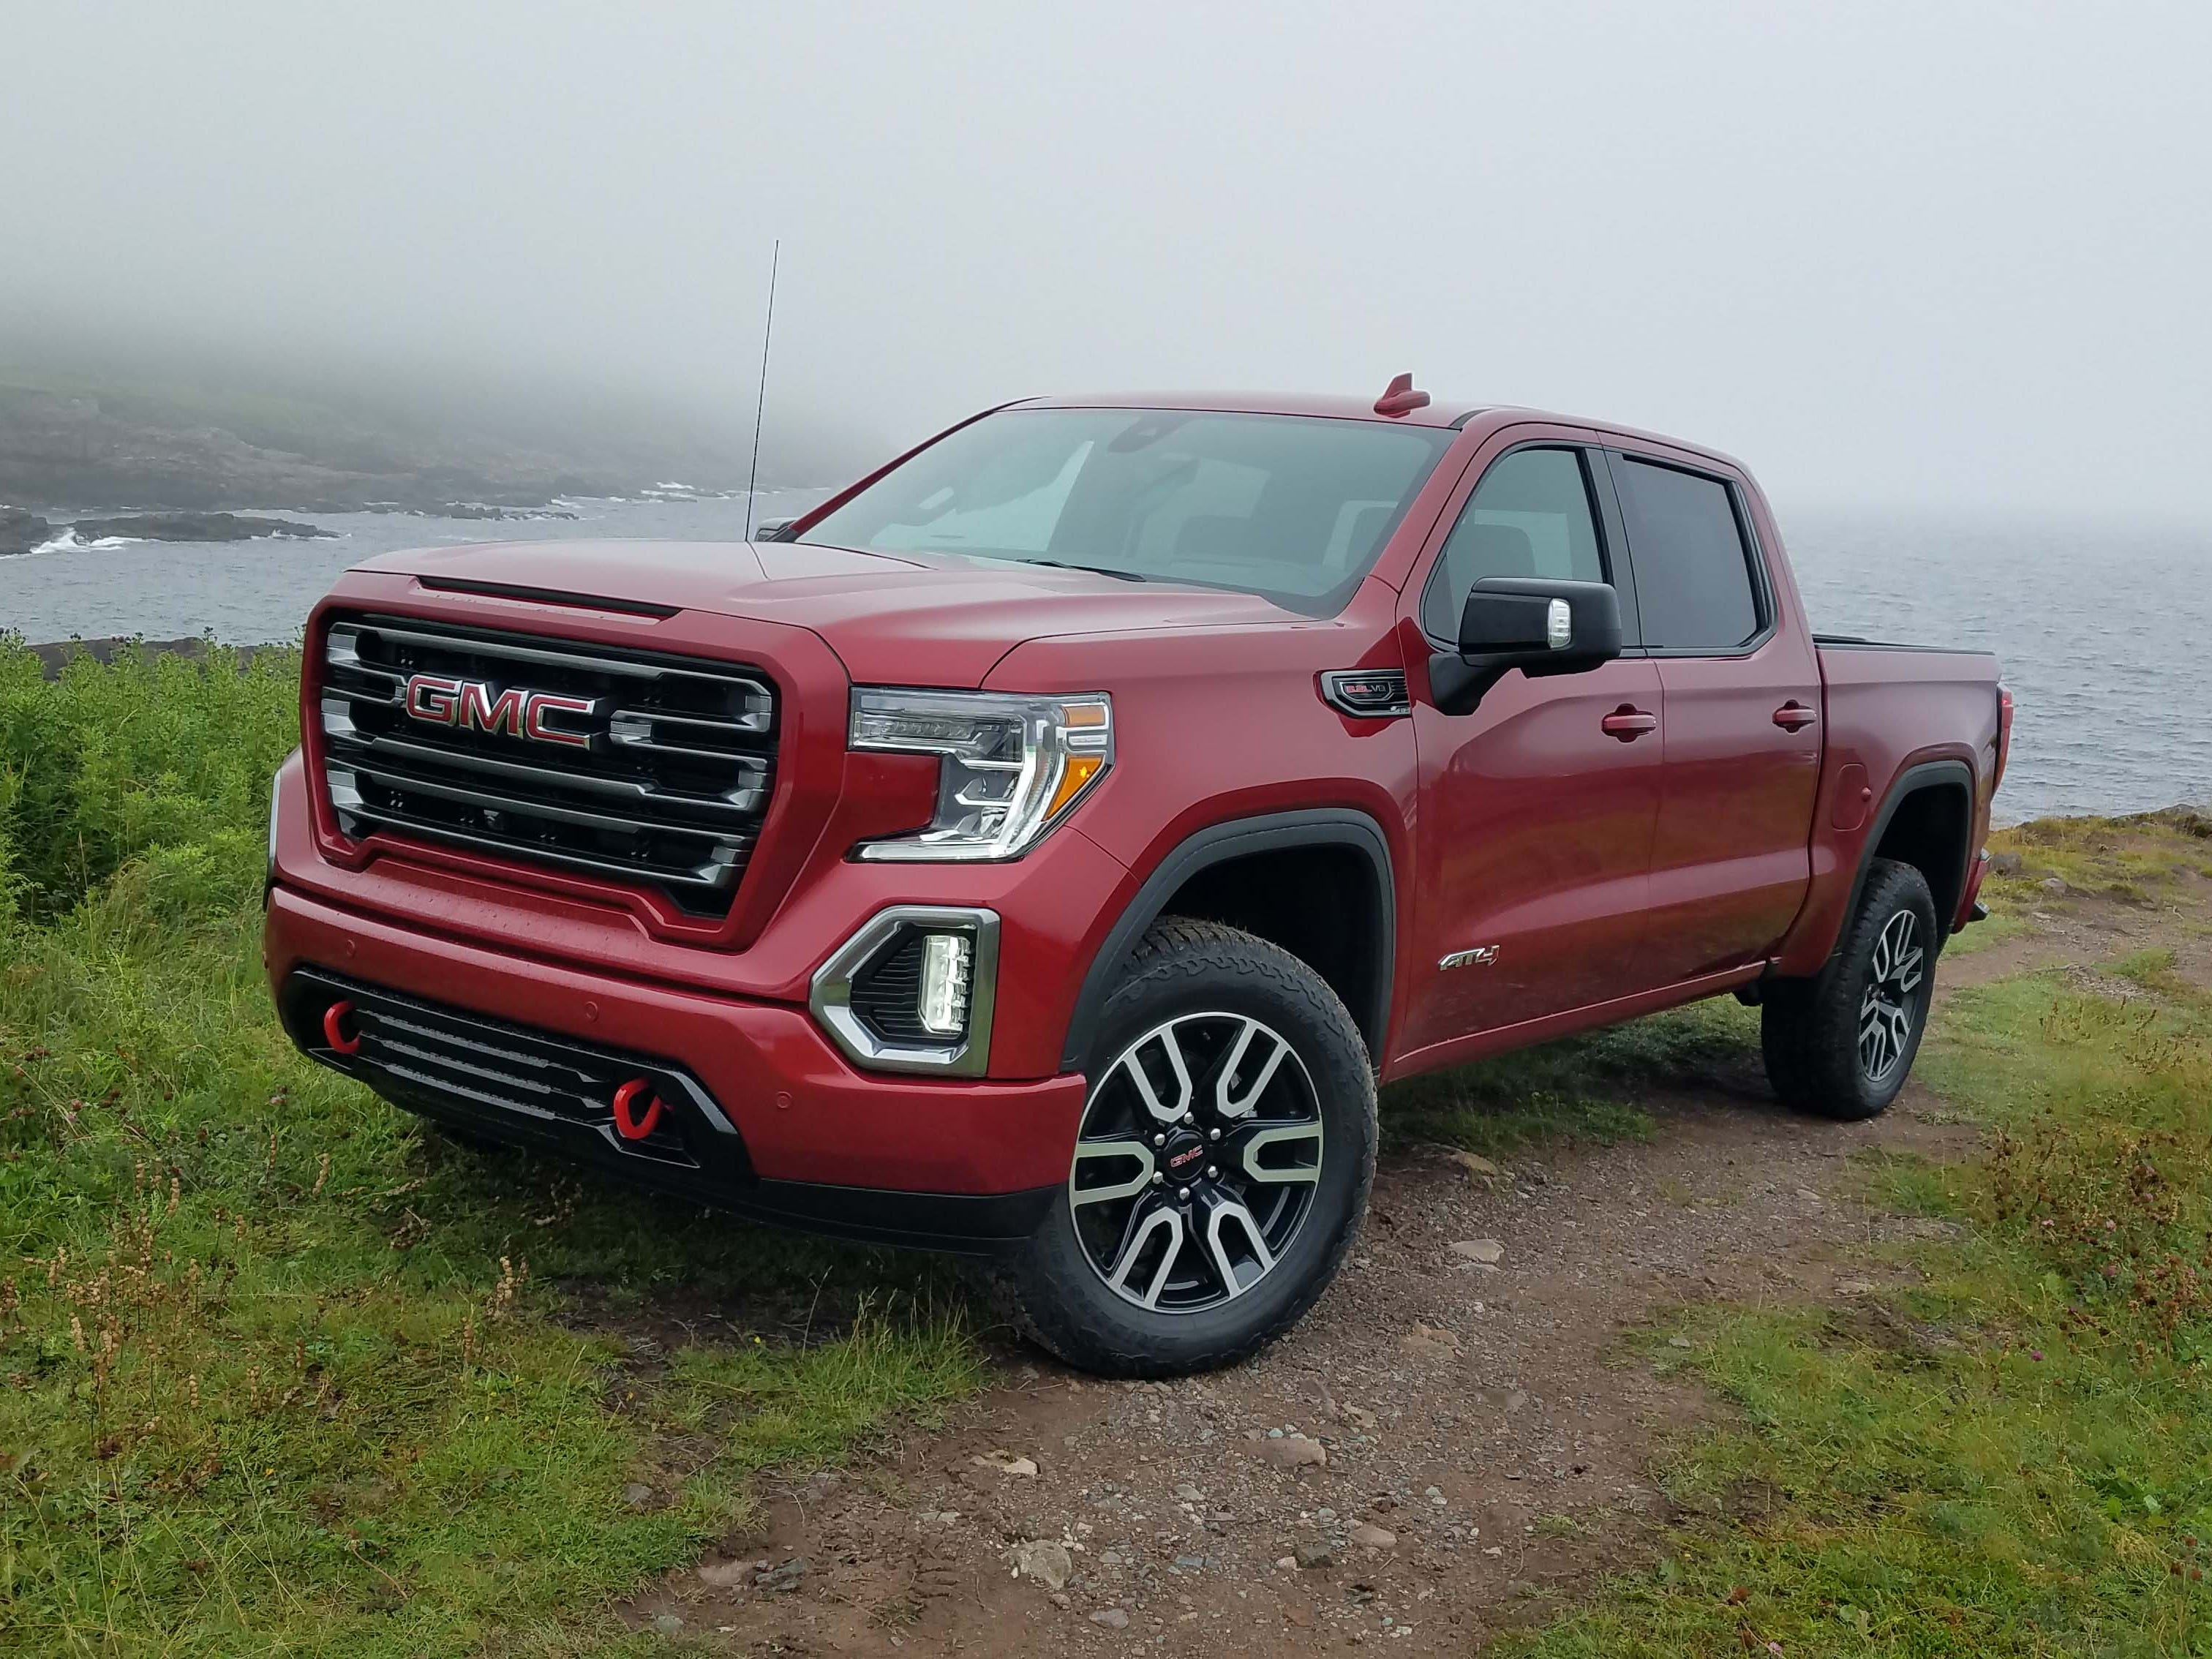 New for 2019 the GMC Sierra gets yet another top-trim badge - the AT4. The off-road trim gives Denali luxury but with a rugged edge for outdoorsy buyers.